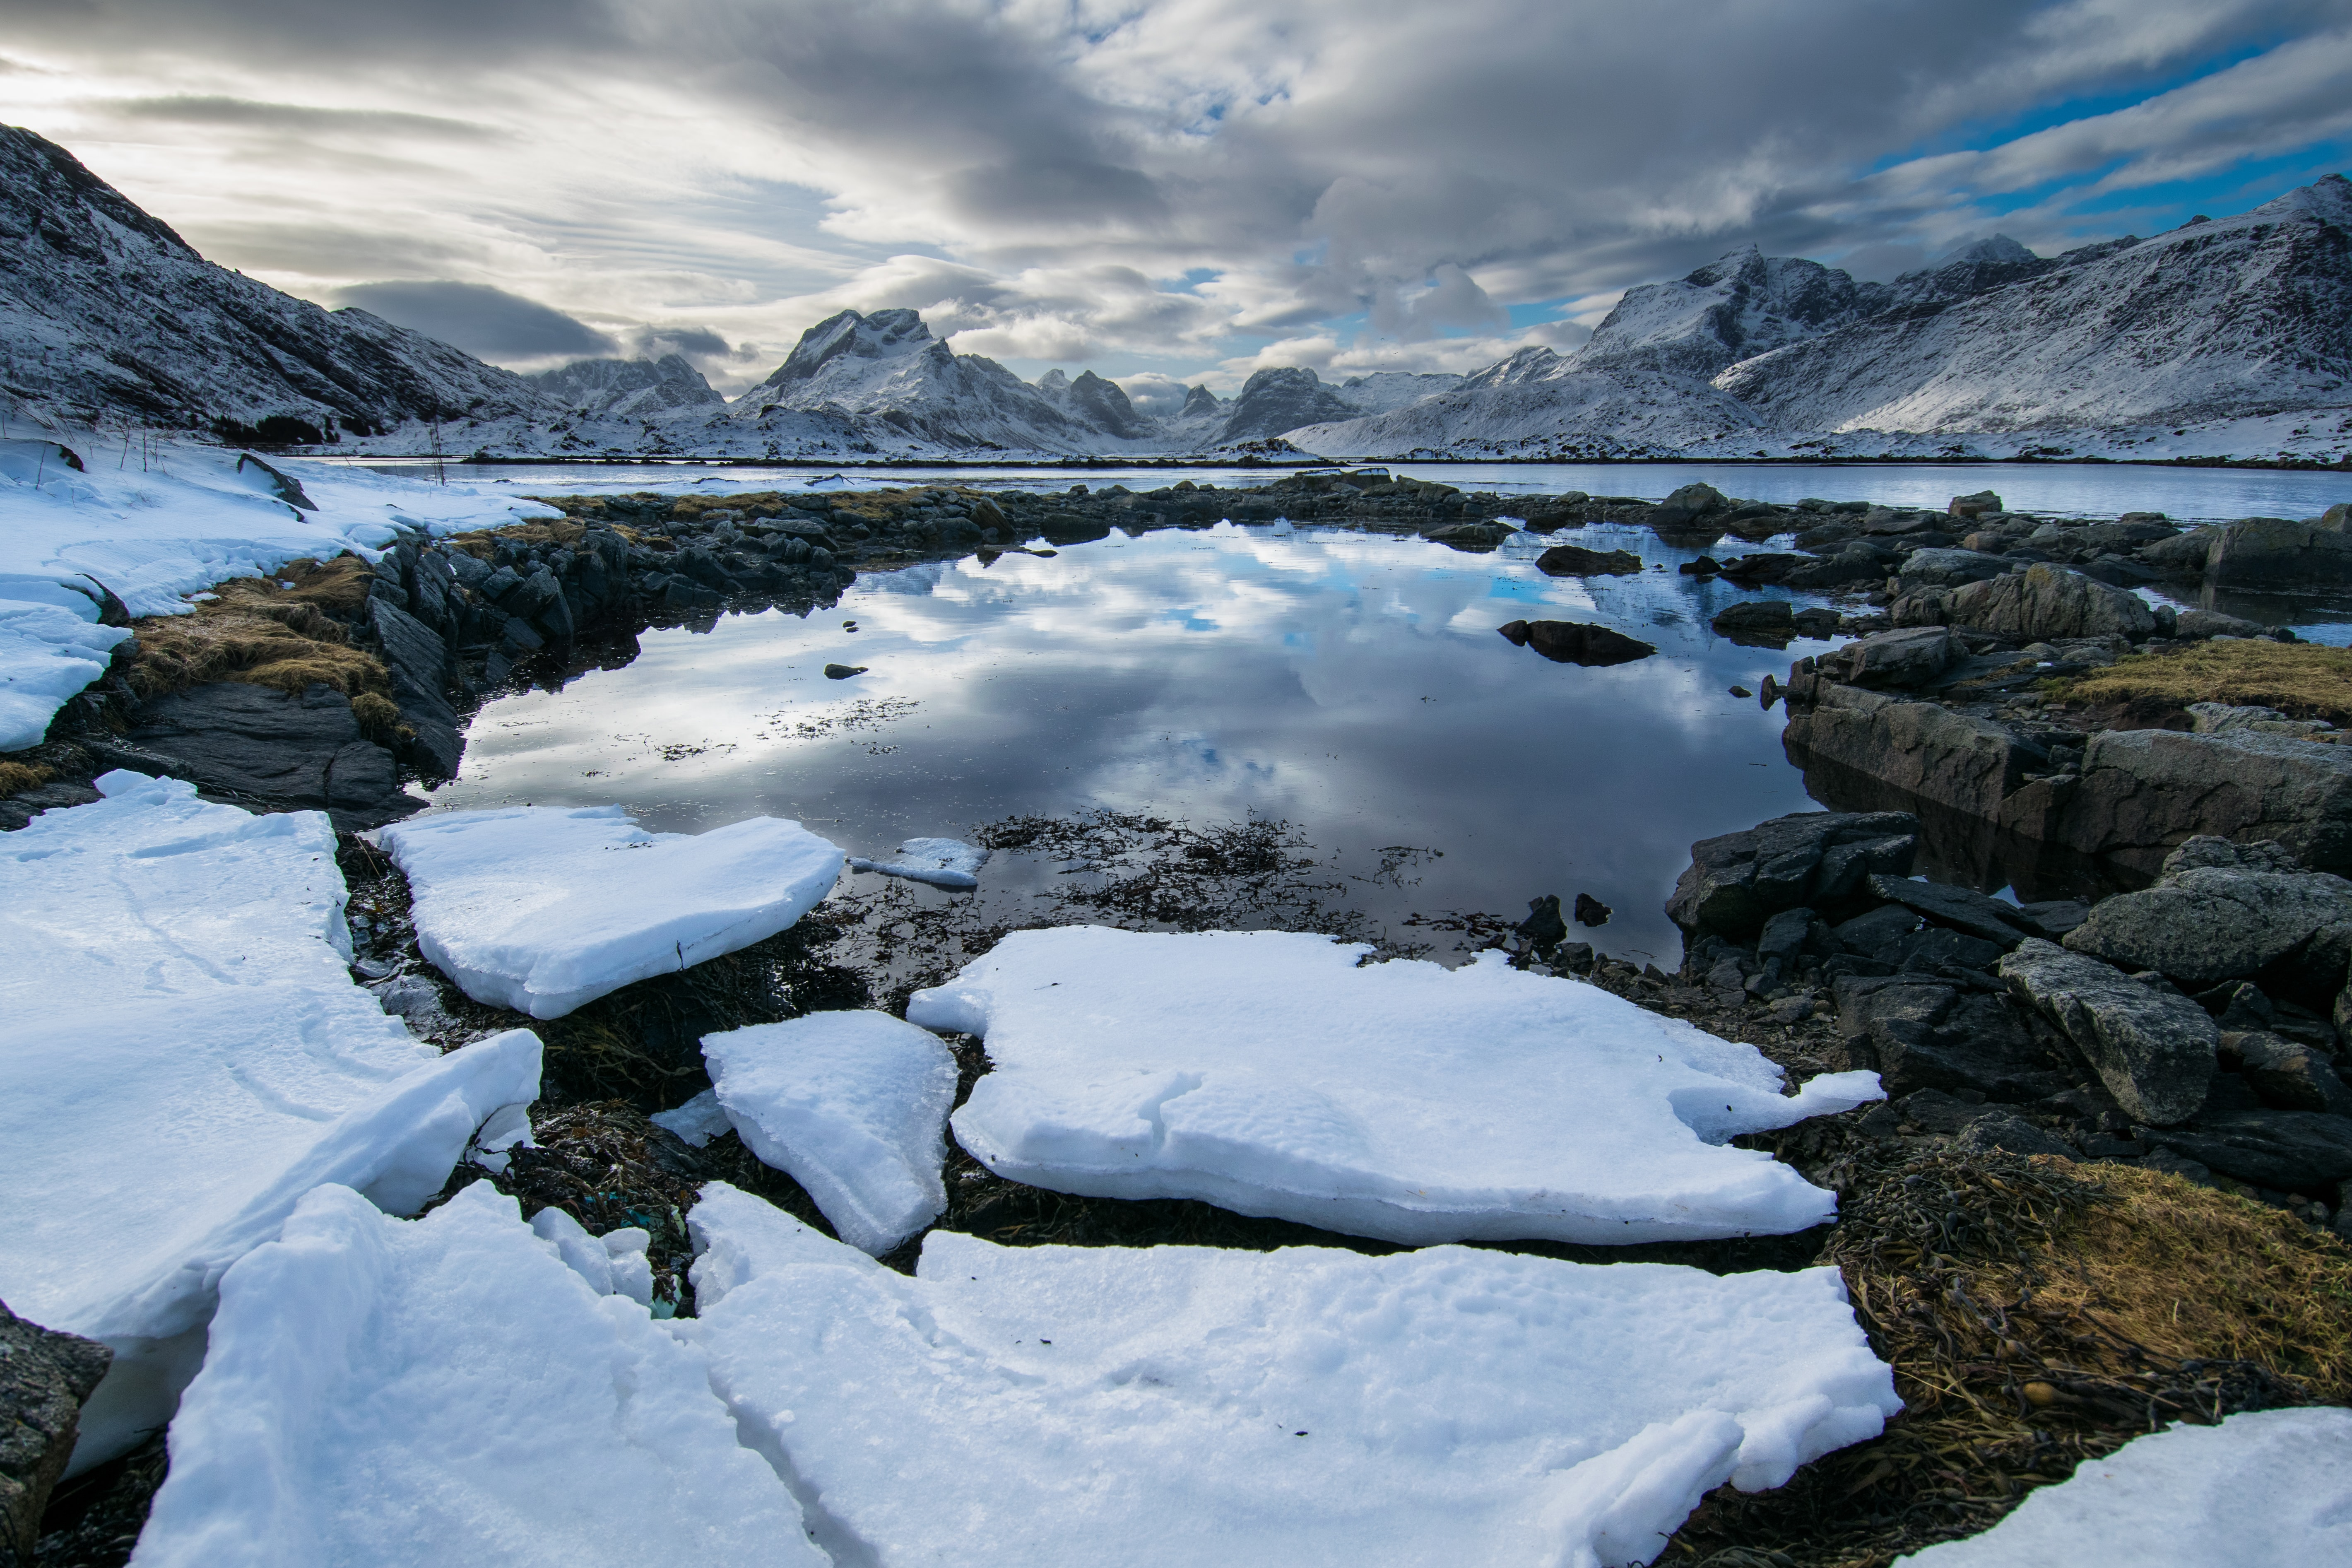 Snow patches along rocks around a lake near mountains, with cloud reflections in the water